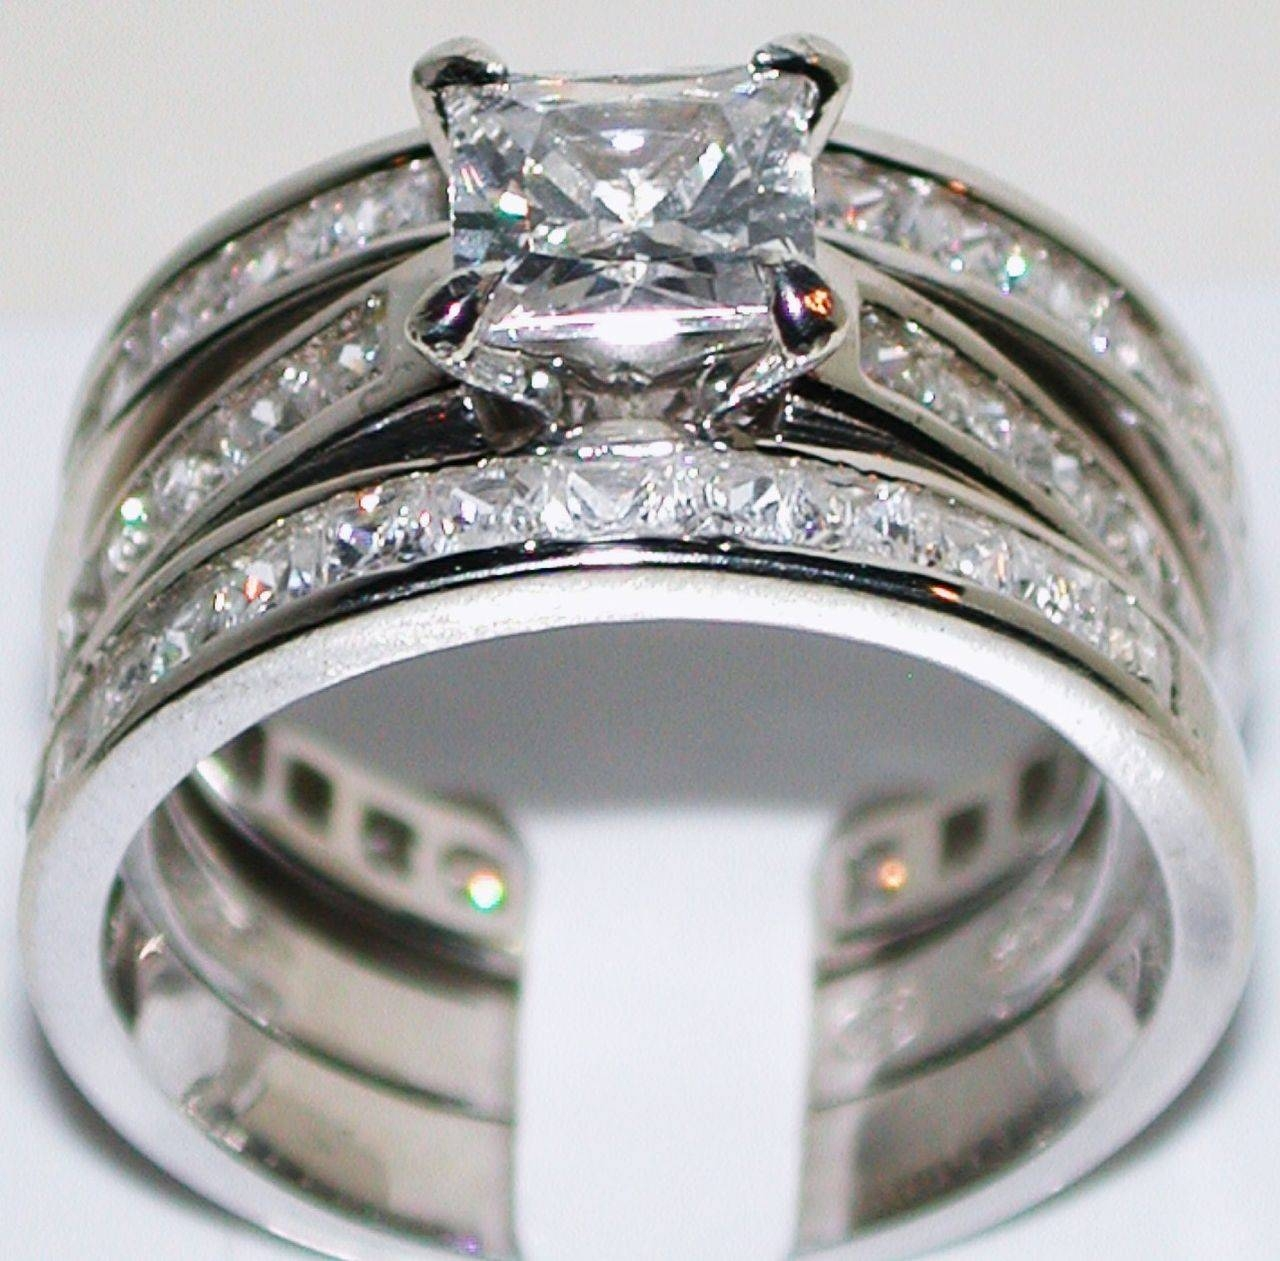 Emejing Thick Band Wedding Rings Ideas – Awesome Wedding Throughout Wide Wedding Bands (View 5 of 15)